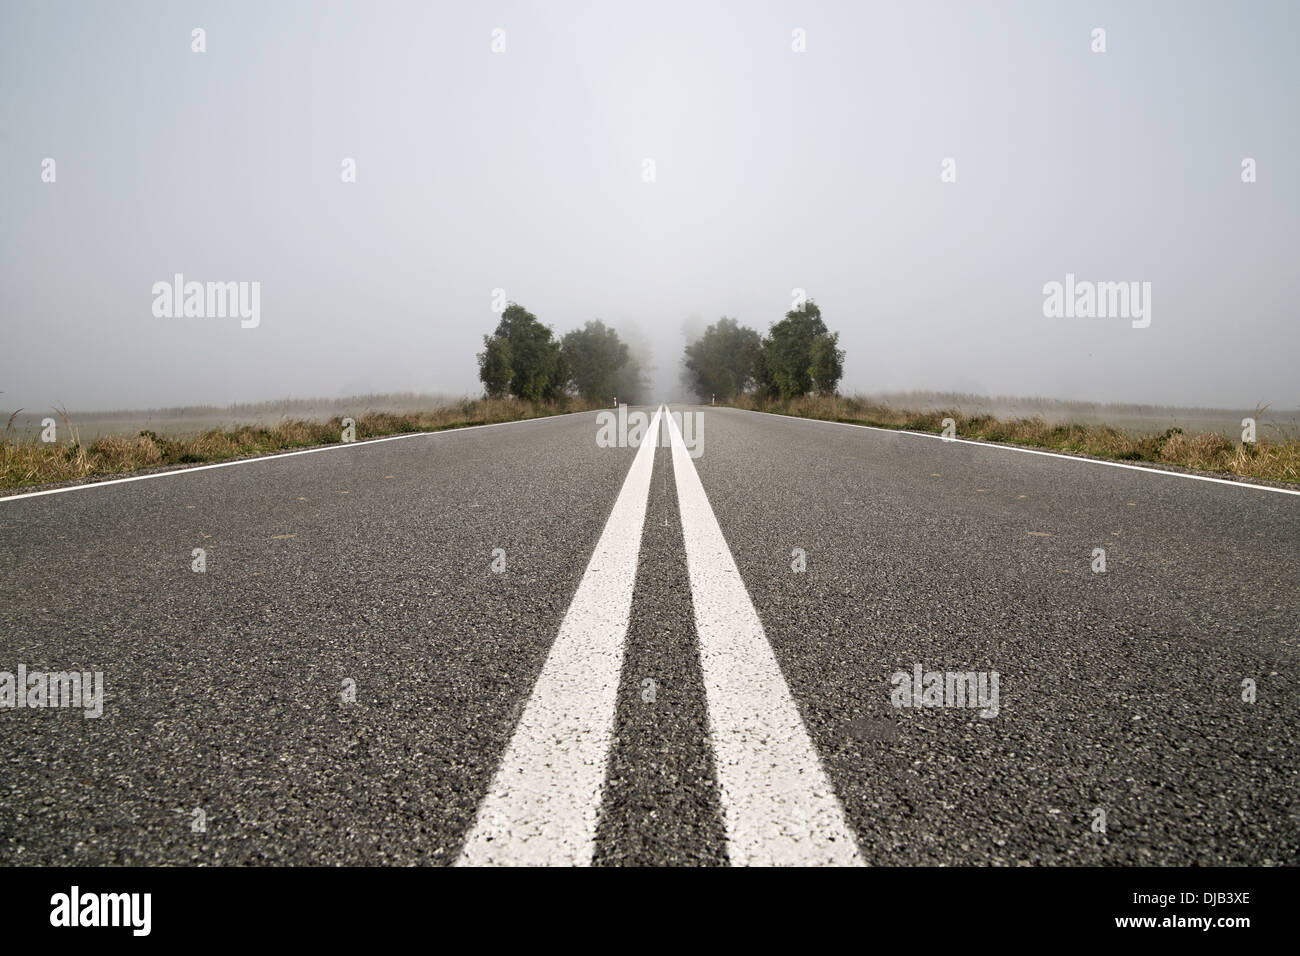 Empty road during foggy day - Stock Image